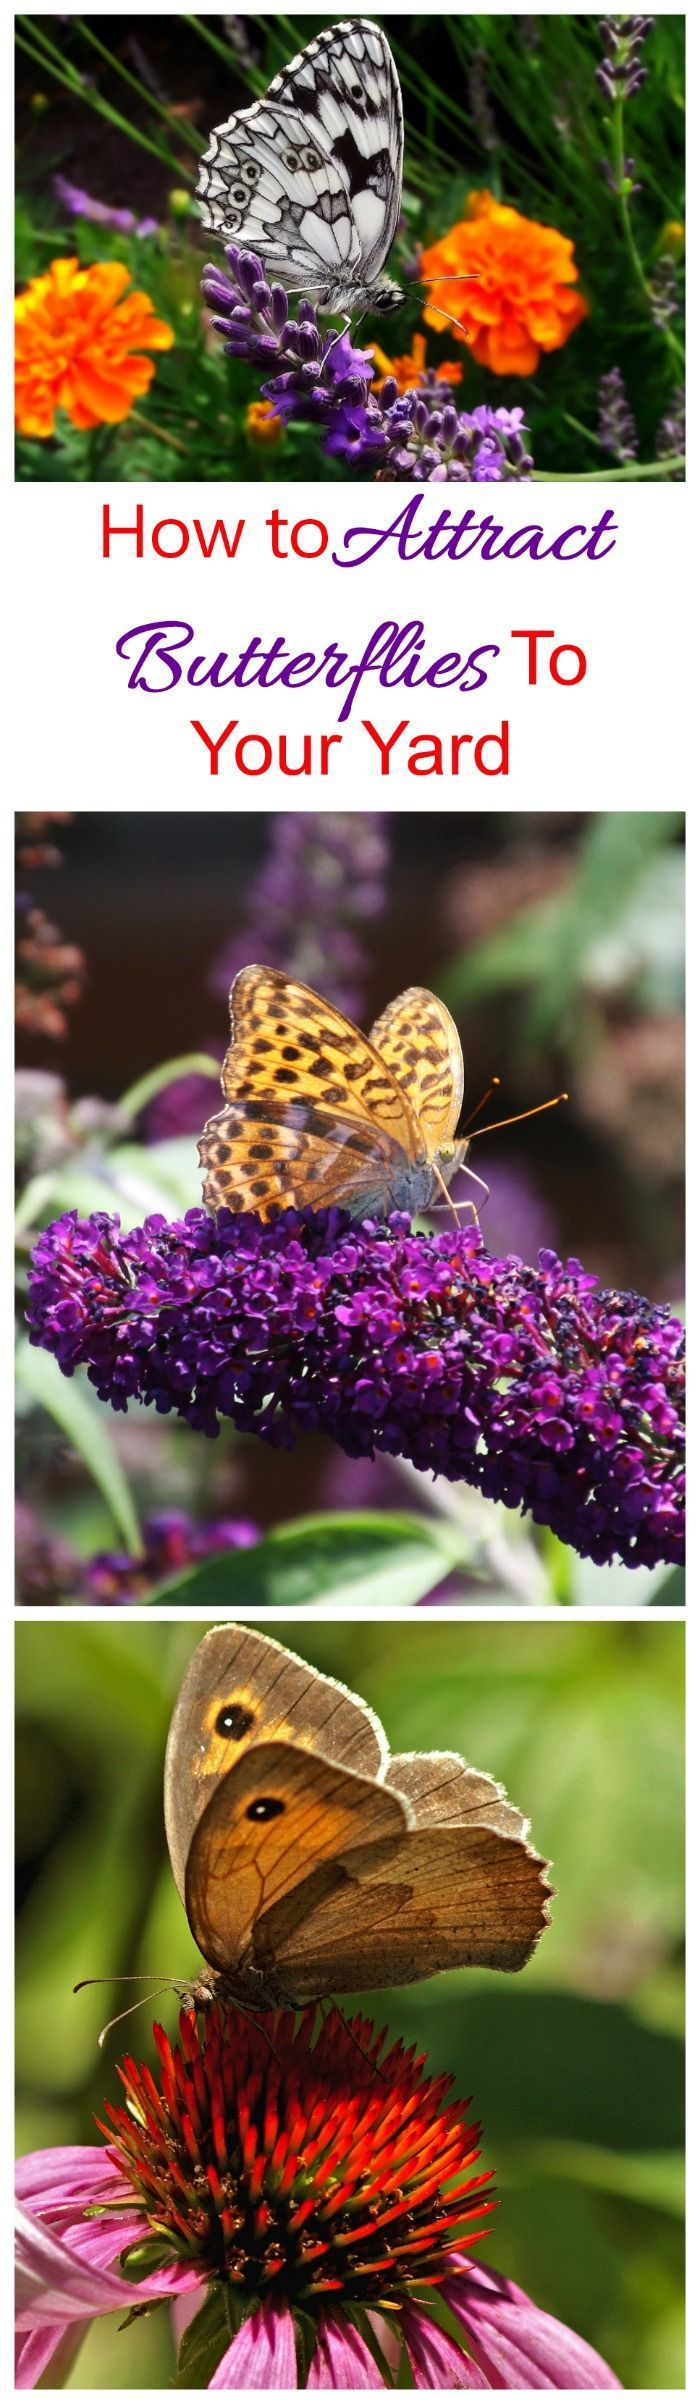 These tips for attracting butterflies will make your garden a butterfly magnet. #nectarplants #attractingbutterflies